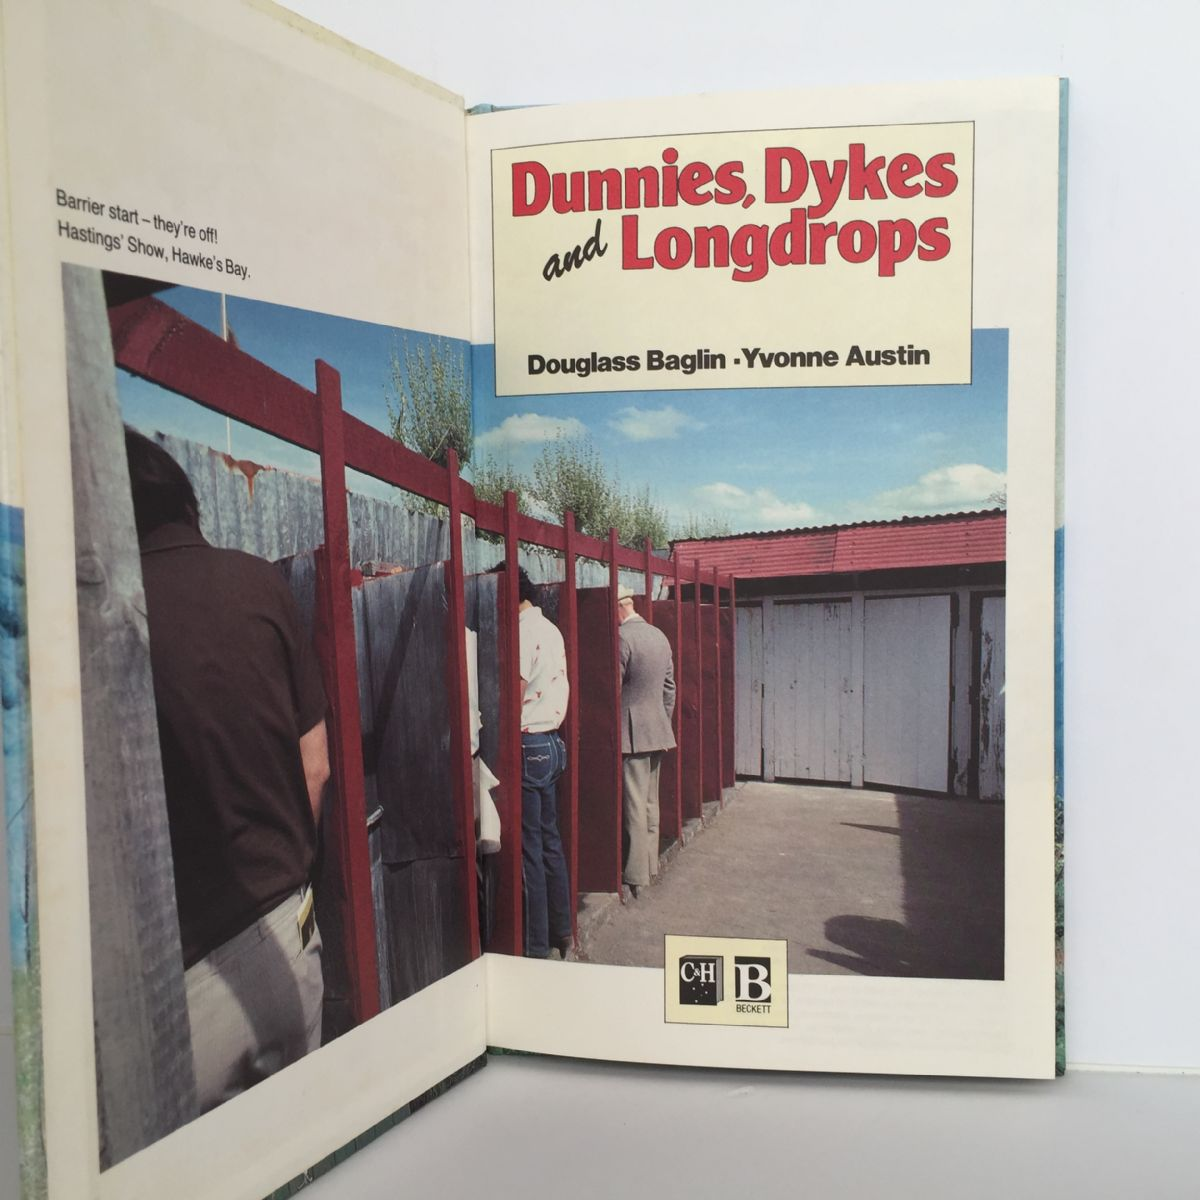 Dunnies, Dykes and Longdrops